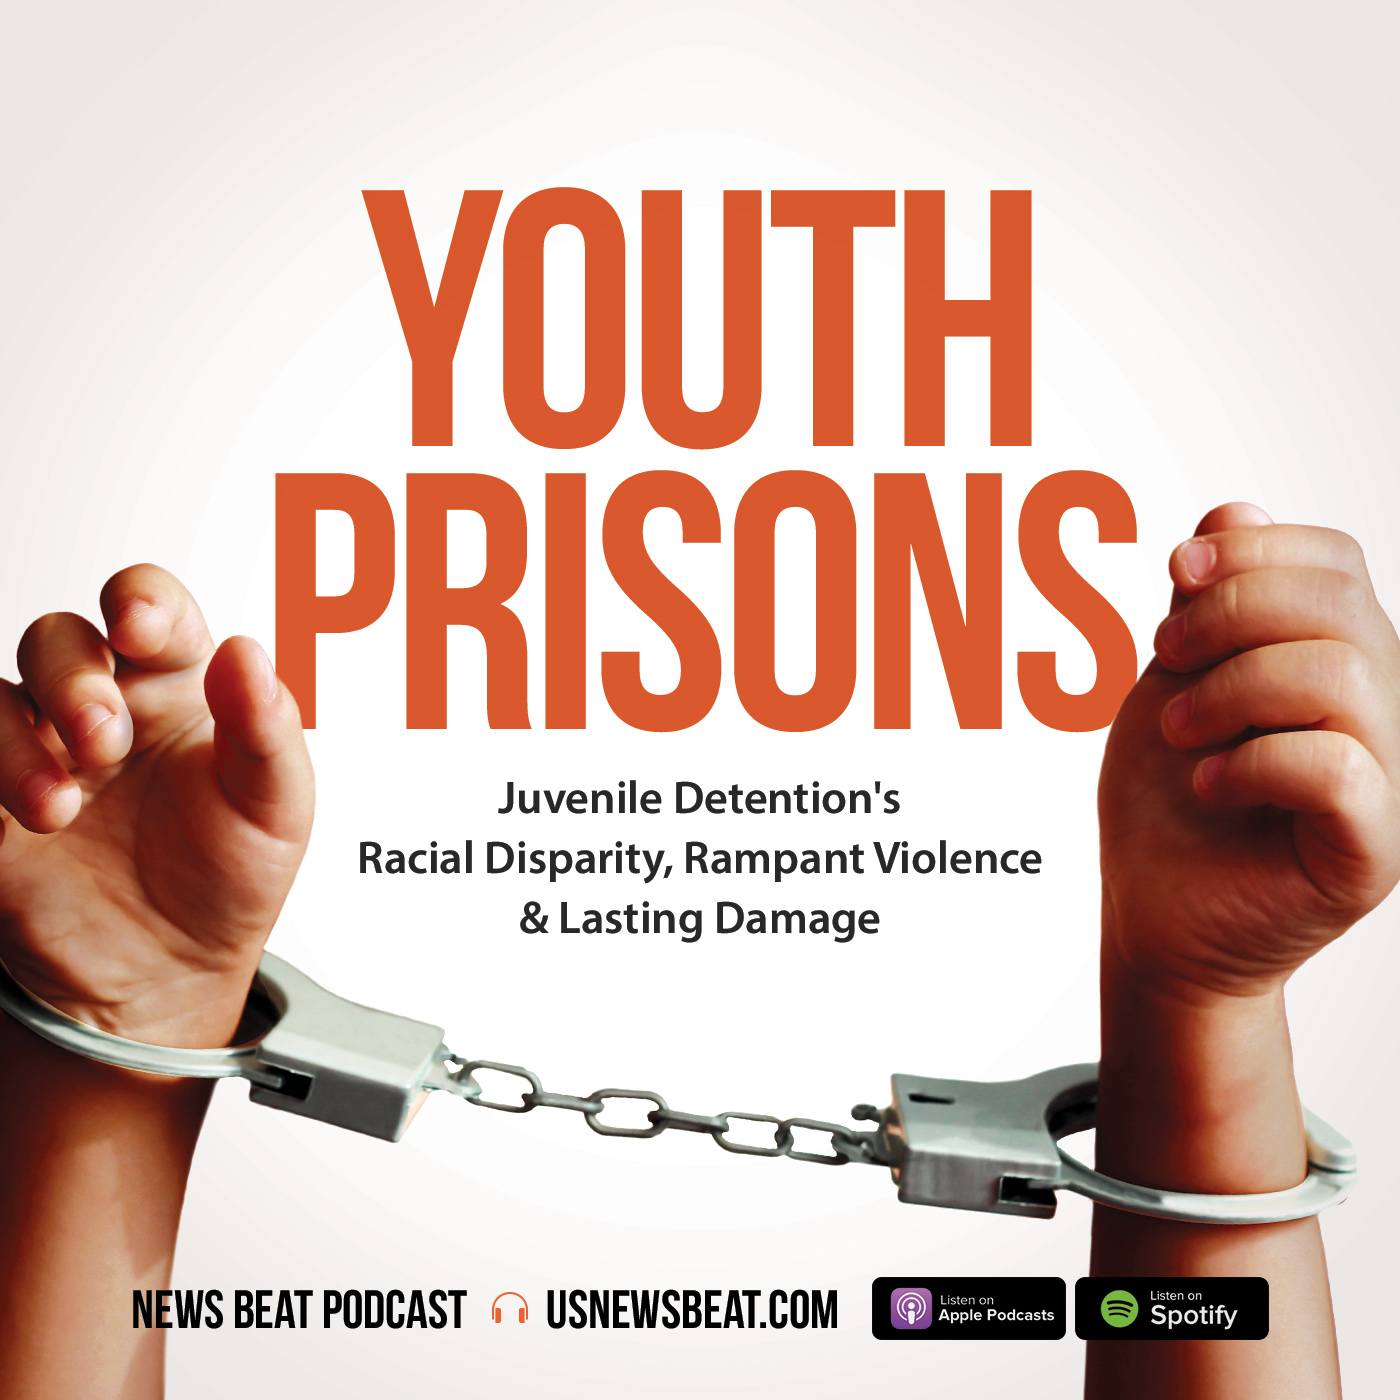 Youth Prisons